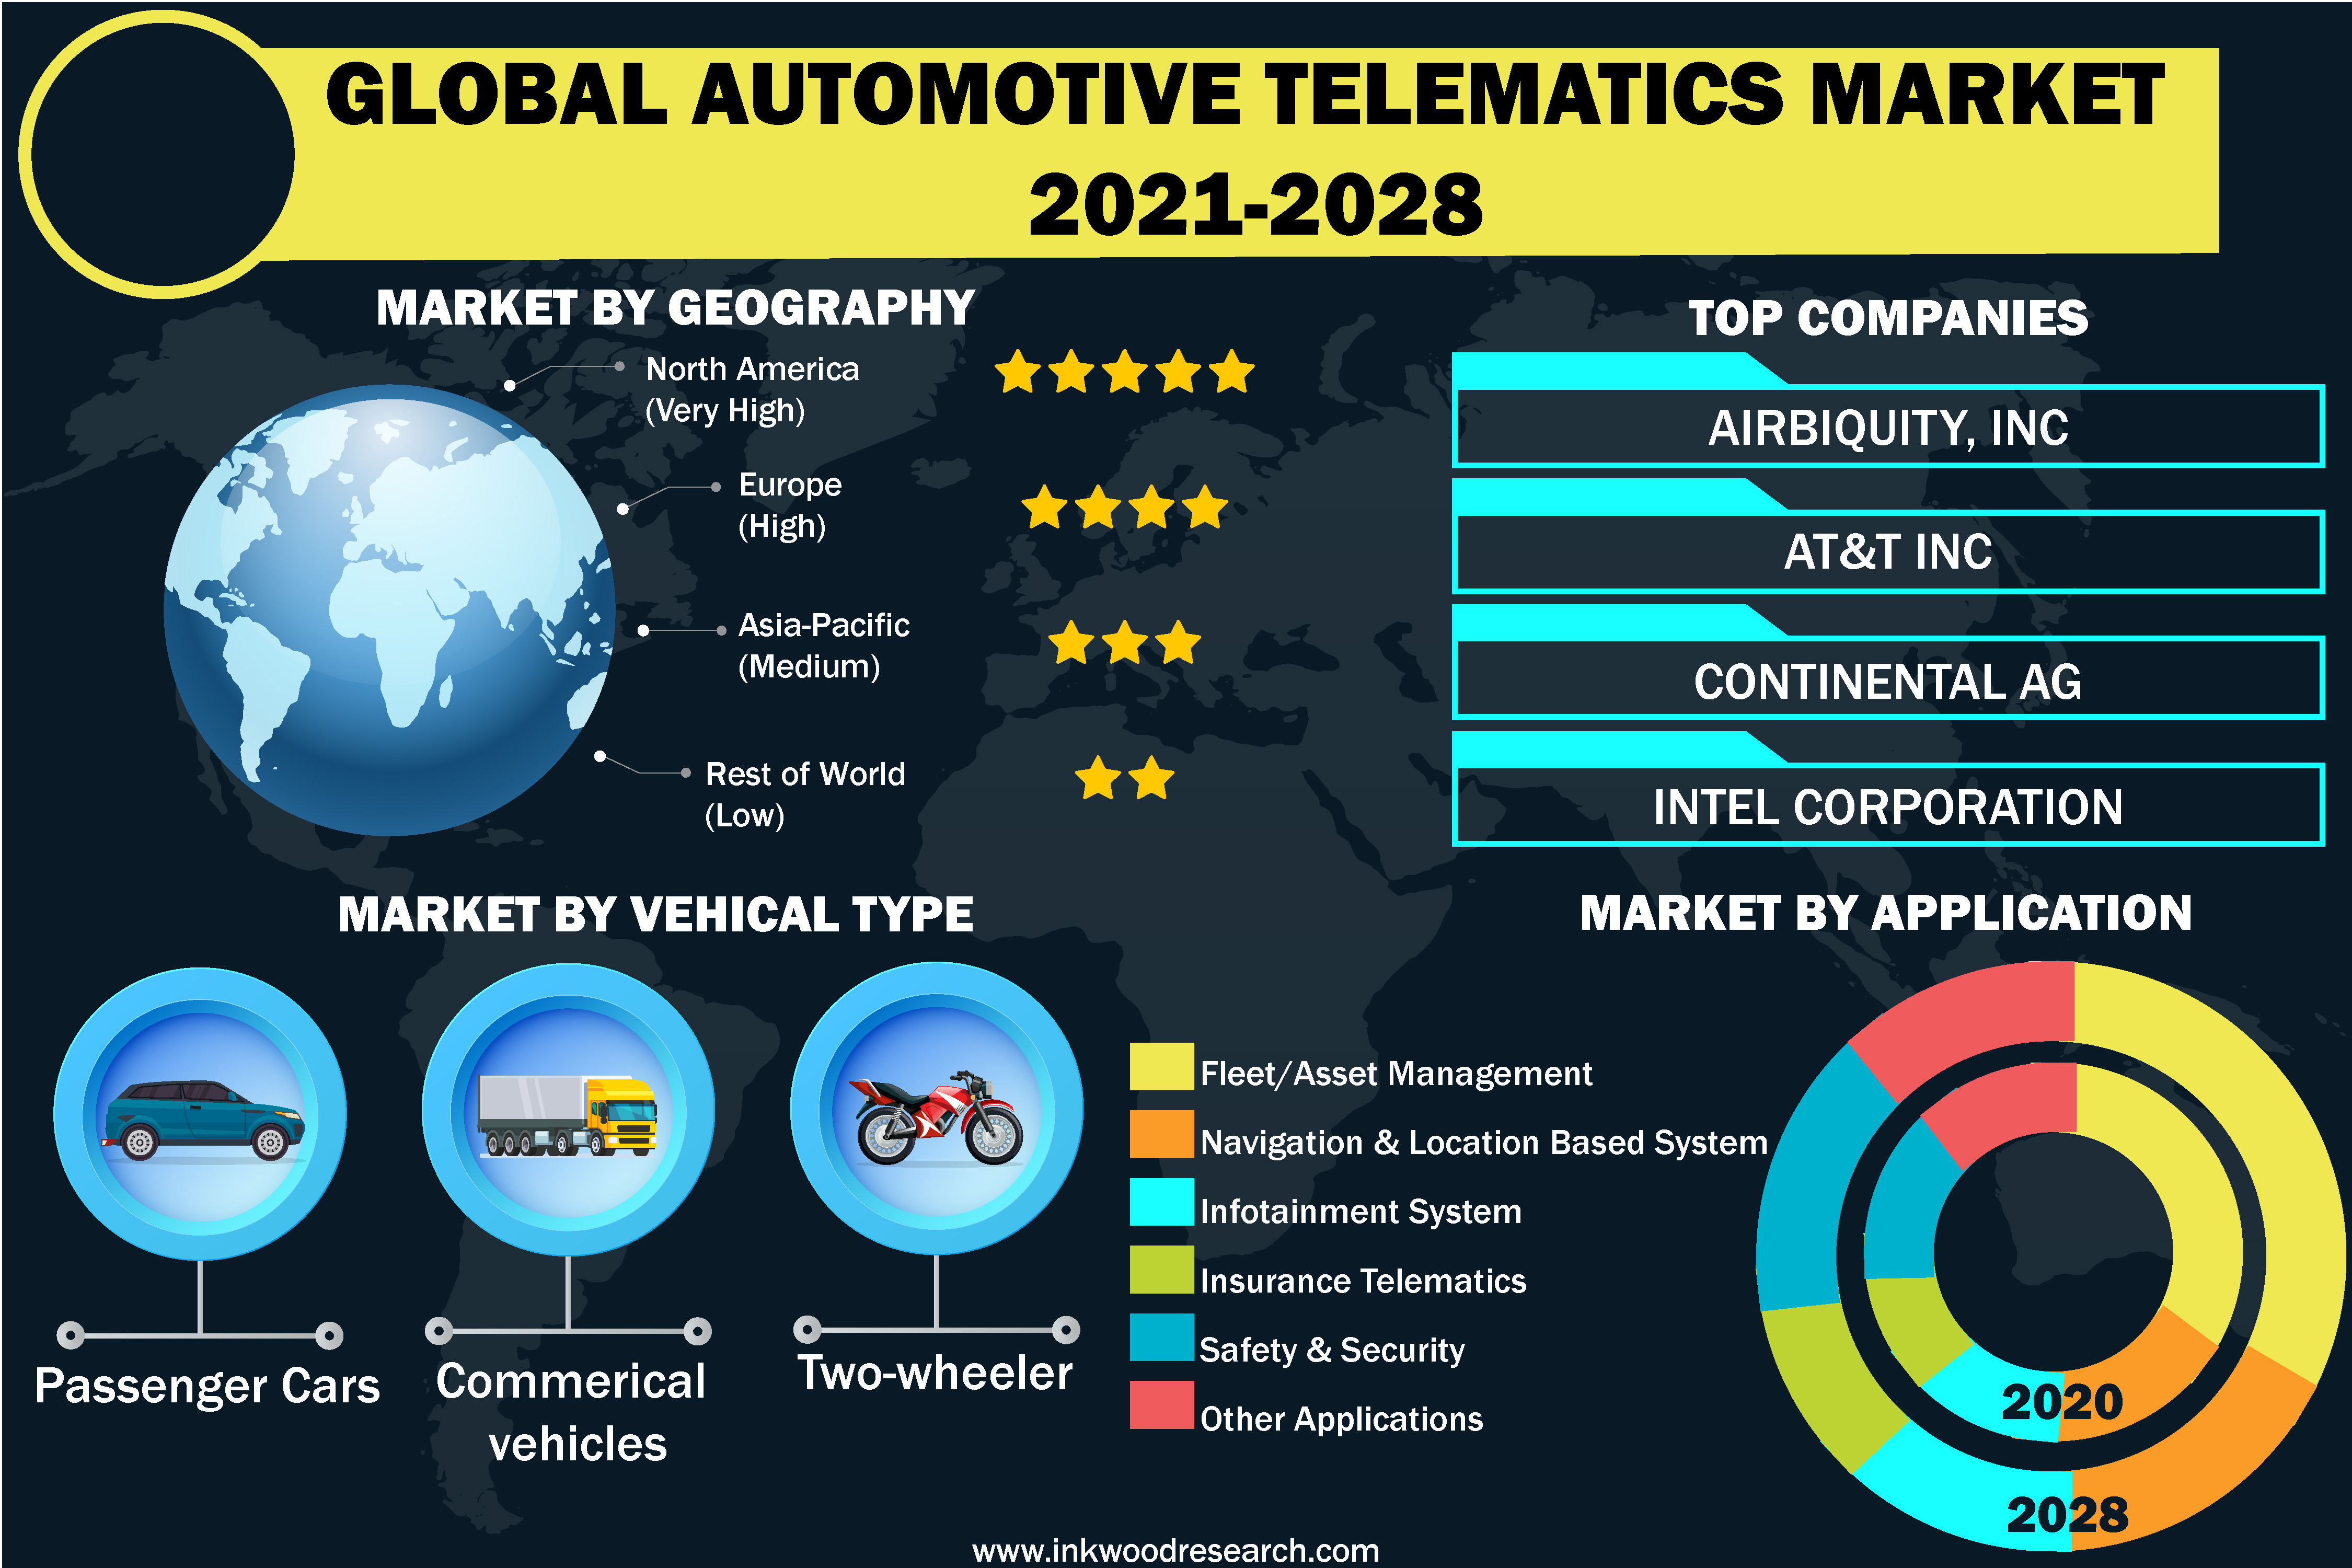 Technological Advancements will push Growth in the Global Automotive Telematics Market